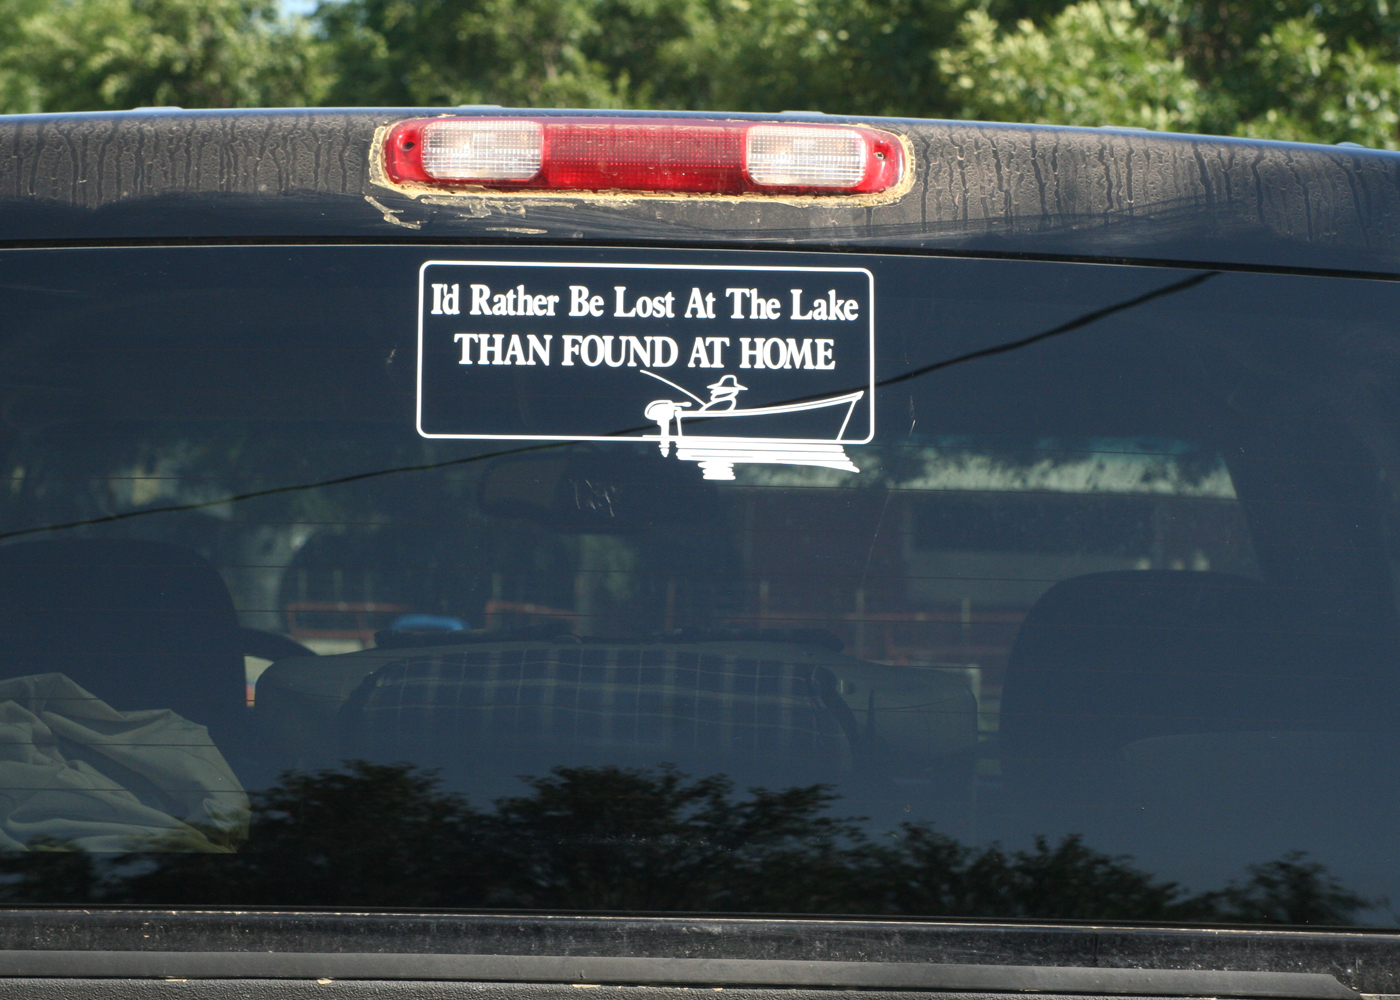 wd294-fishing-vinyl-quote-for-truck-car-decal.jpg